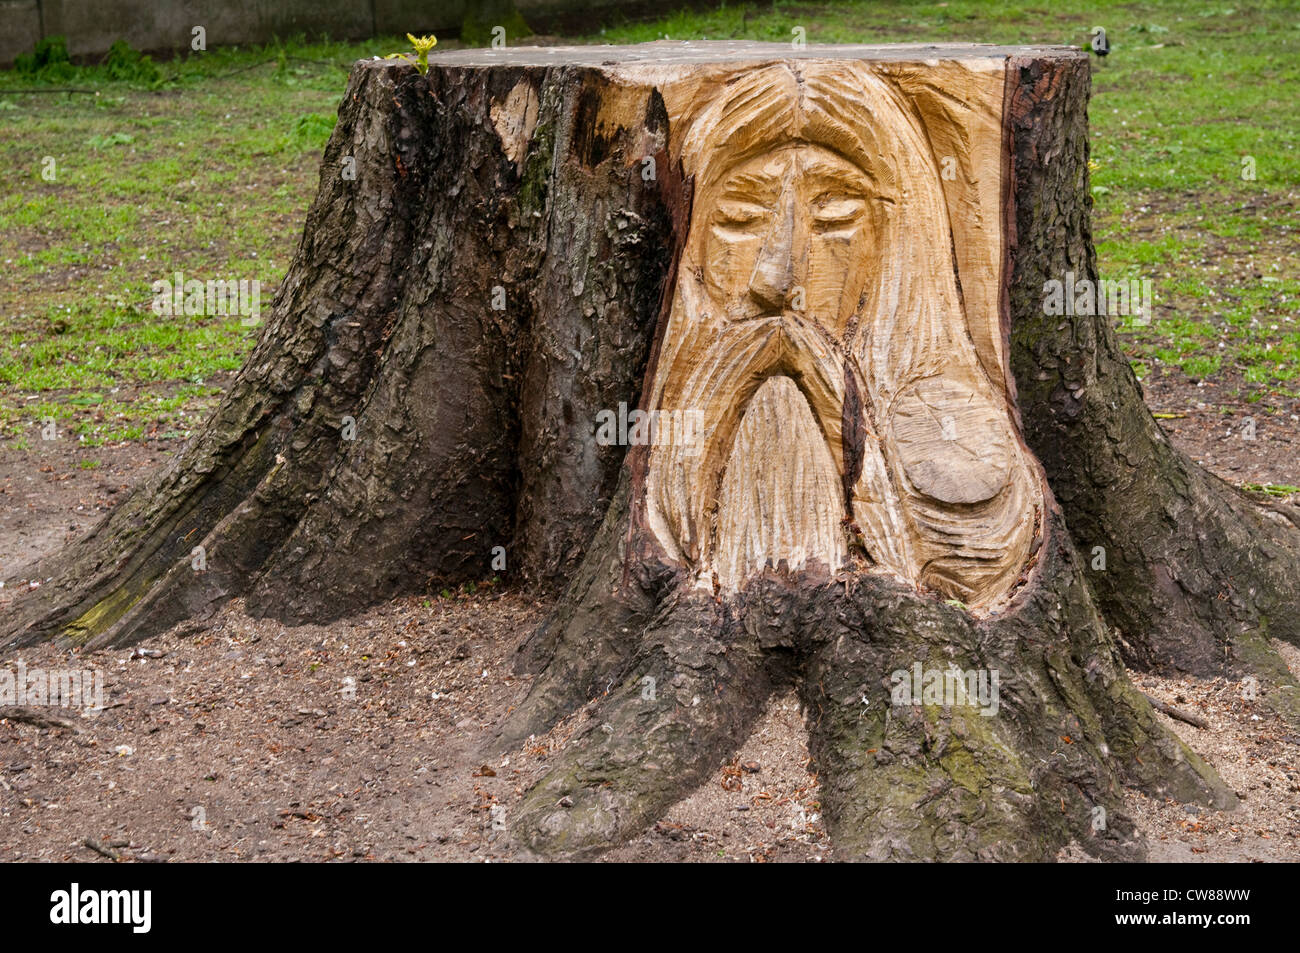 Butler Outdoor Teppich Carved Tree Stump Stockfotos And Carved Tree Stump Bilder